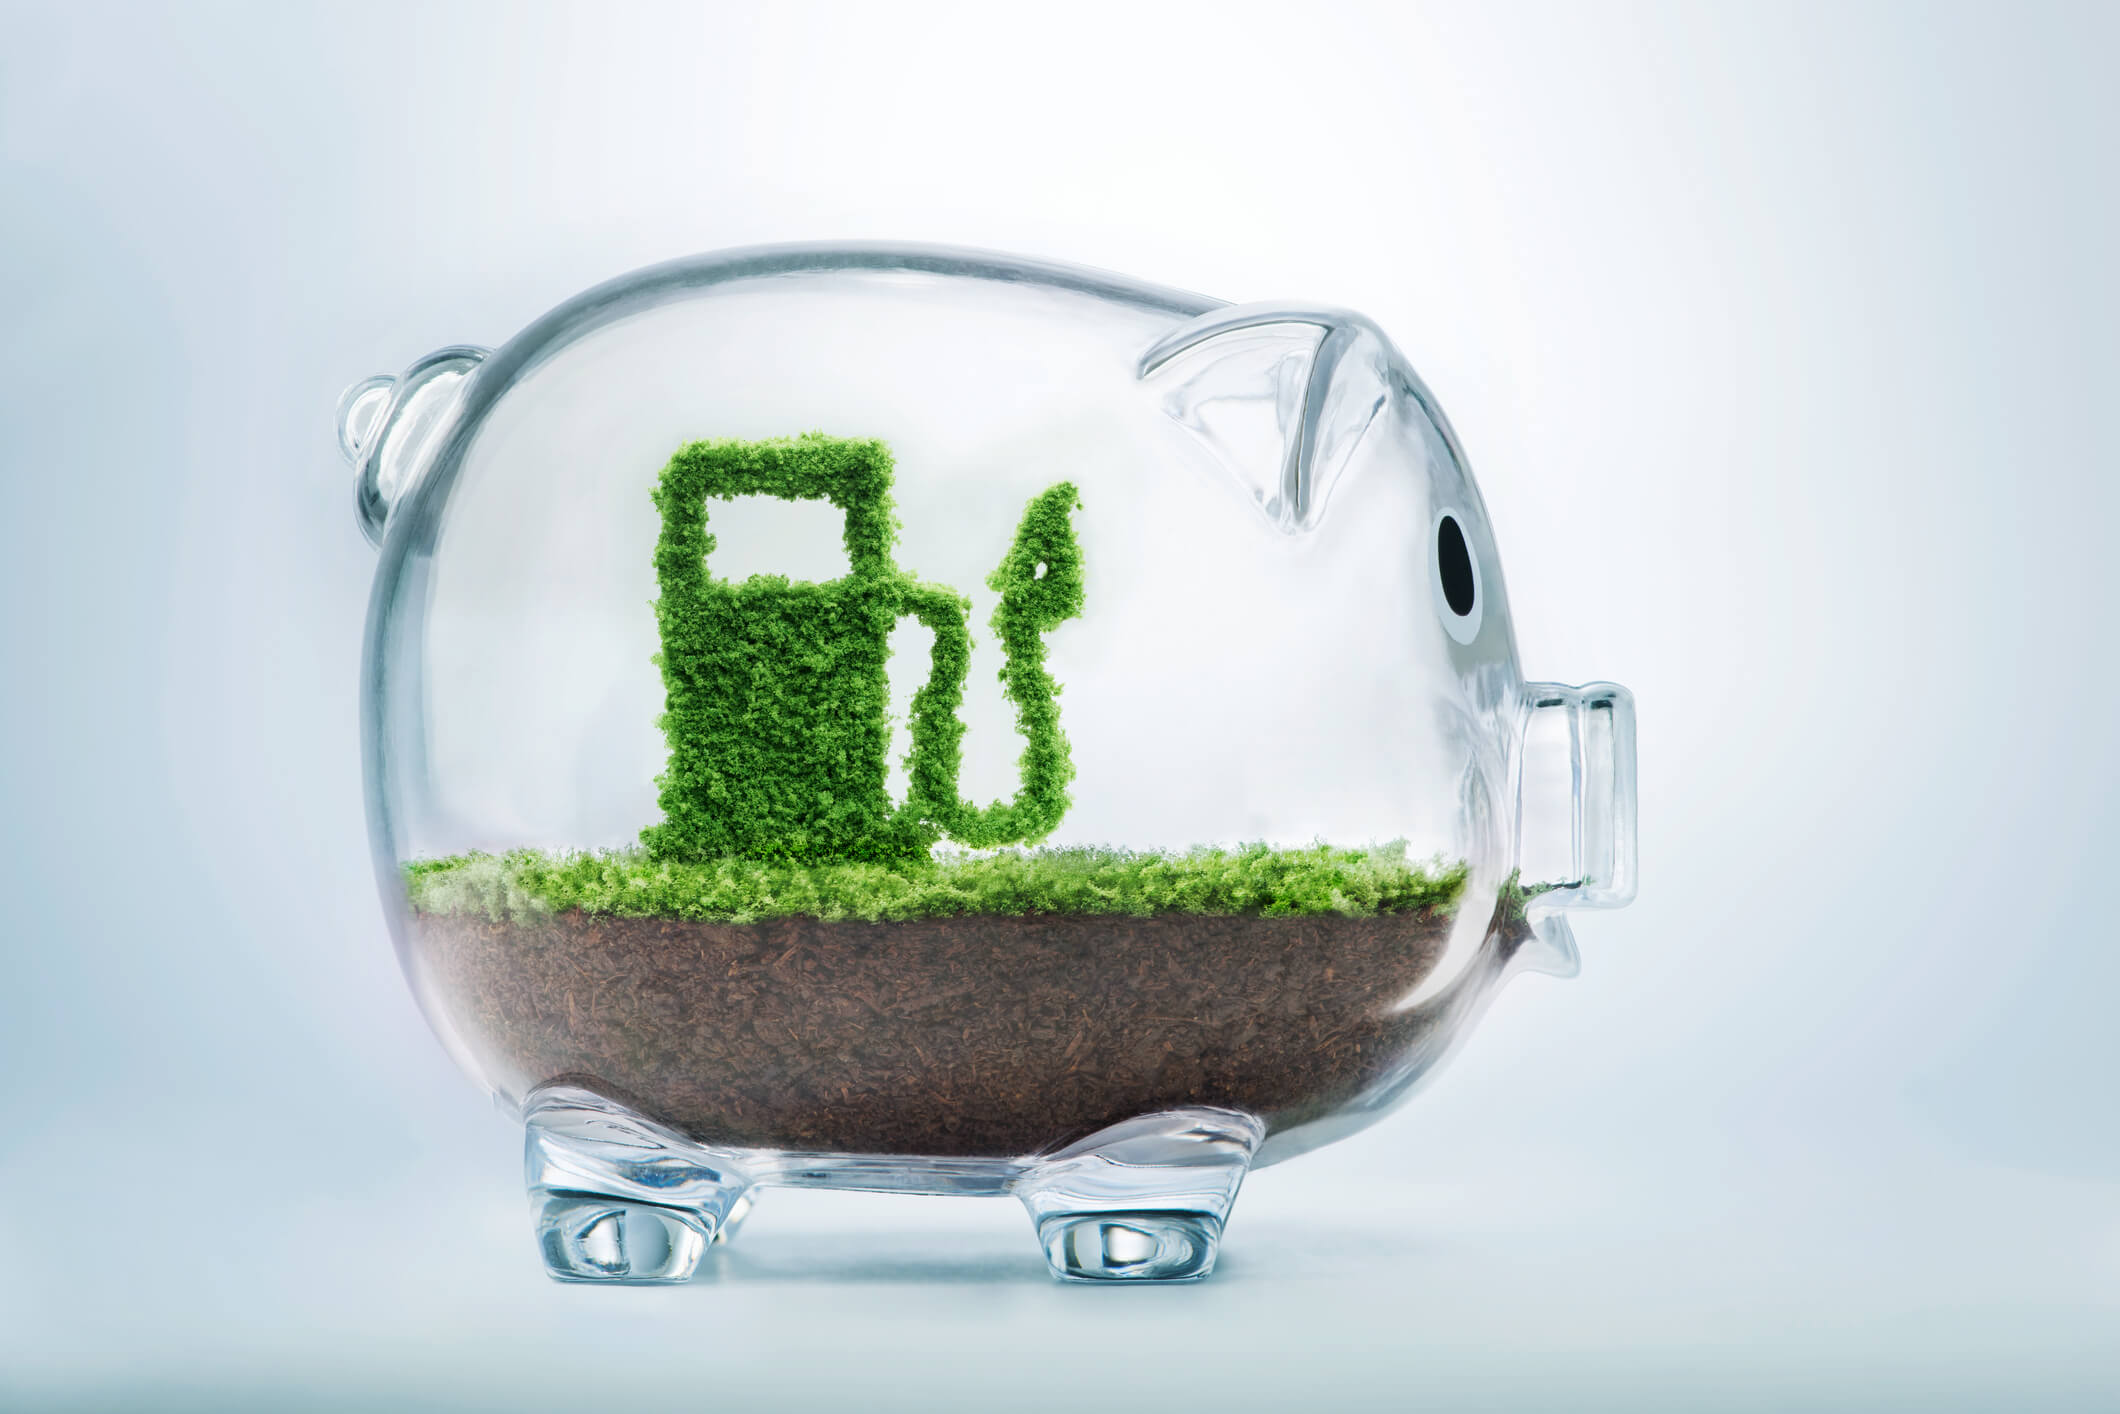 Image: a translucent piggy bank with soil and grass inside. there is a small bush in the shape of a gas pump inside.